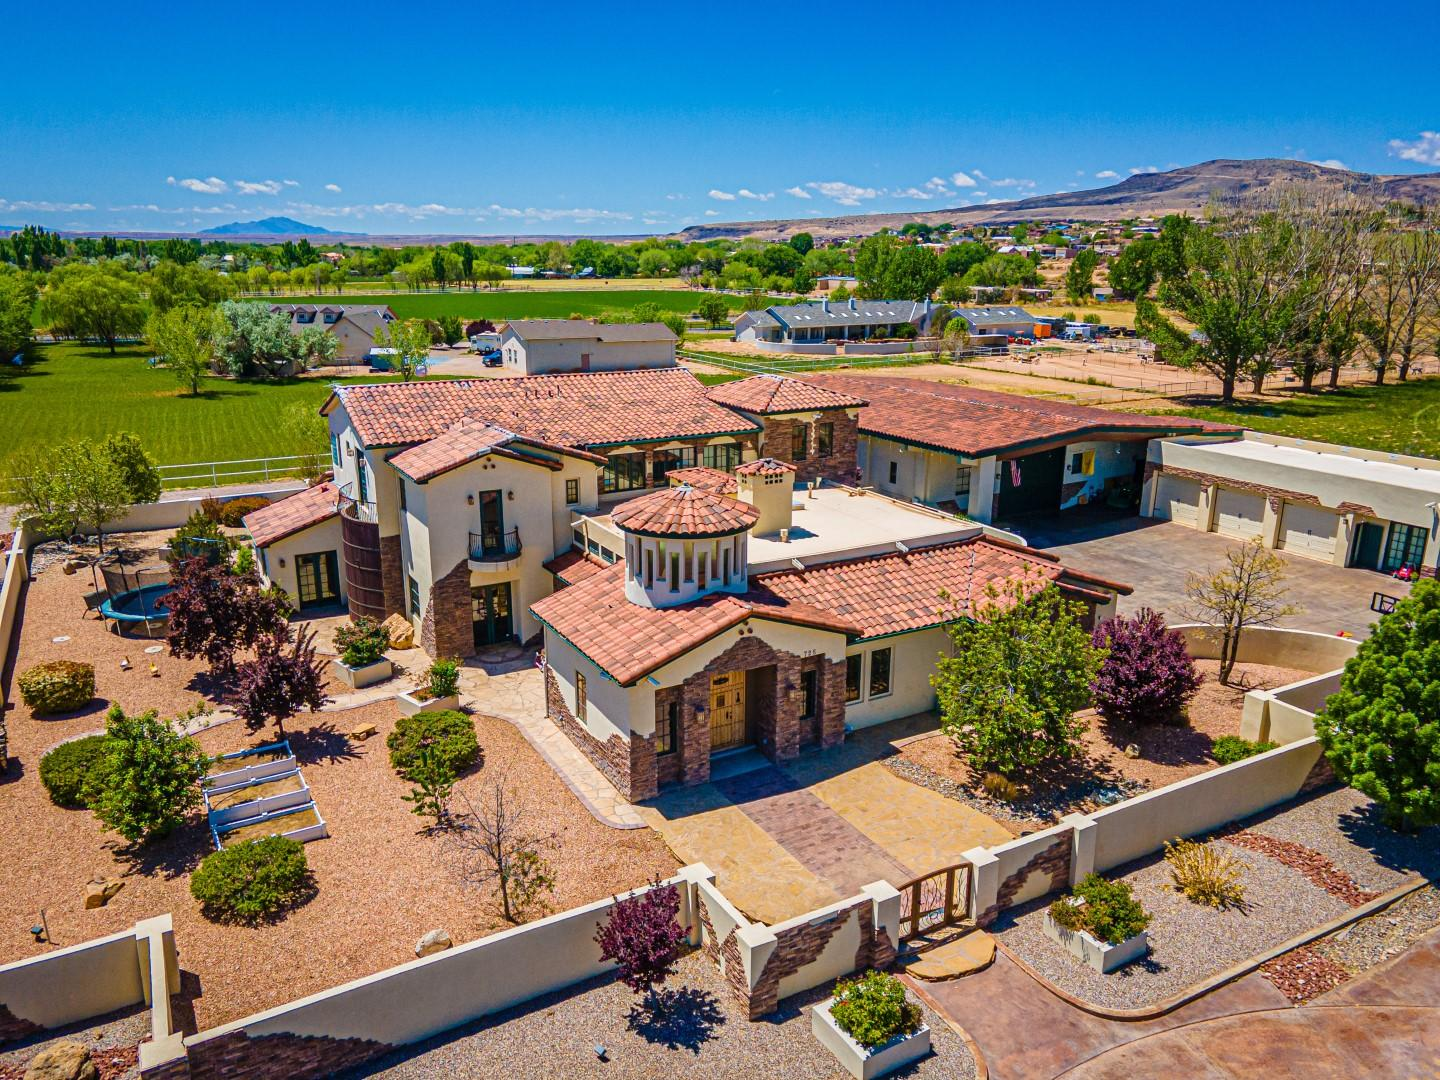 Amazing custom home on 2 acres in the heart of Los Lunas.  Features 7,420 sq ft, 4 bedrooms, 4.5 baths.  Two living areas, pool room, office/library, wine room, formal dining room.  Kitchen has custom cabinets, granite counter tops, under & over cabinet lights, island w/6-burner cooktop, double oven, Jenn-Air appliances & breakfast nook.  Master Suite has huge walk-in closet w/washer & dryer, sitting/exercise room w/mini bar, wine cooler, sink.  Master bath has jacuzzi tub, separate shower, double sink vanity.  In-ground pool is heated & has covered hot tub.  3-car detached garage is finished w/cabinets & huge connected storage room.  Another oversized detached garage has 2 bays and holds RV.  3-car attached garage has tile flooring, custom cabinets & water line for refrigerator.